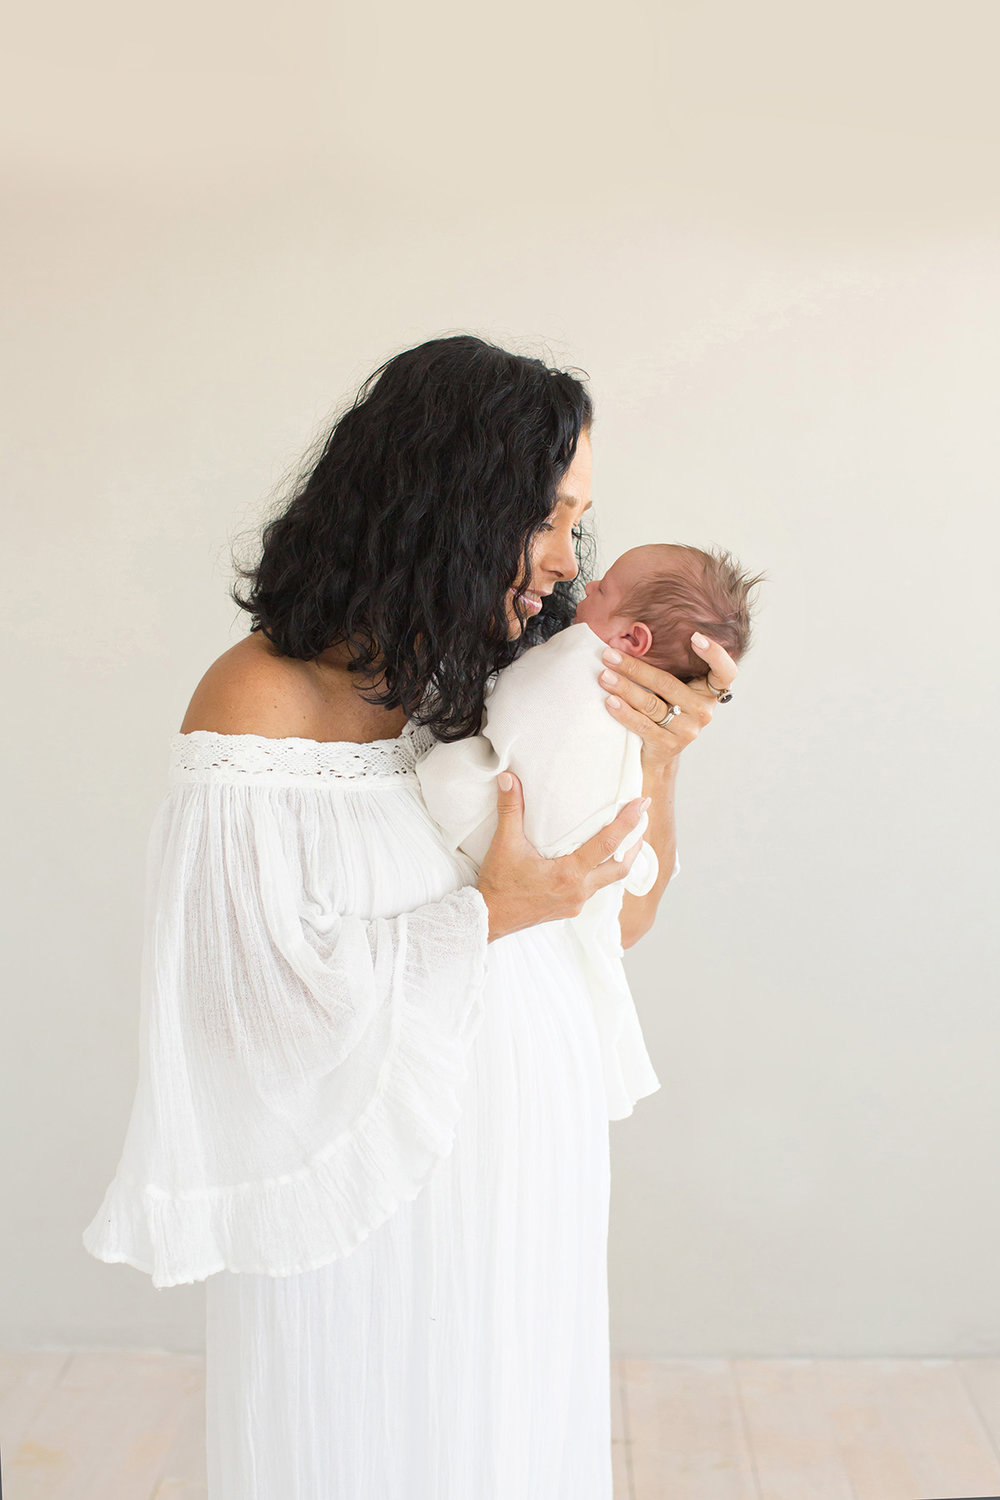 Best Louisville KY Newborn Photographer | Julie Brock Photography | Louisville KY Maternity Photographer | Louisville KY Family Photographer | Louisville KY Photographer | Louisville KY Baby Photographer | Newborn Photography Studio | Boho Photography session dress | Jen's Pirate Booty